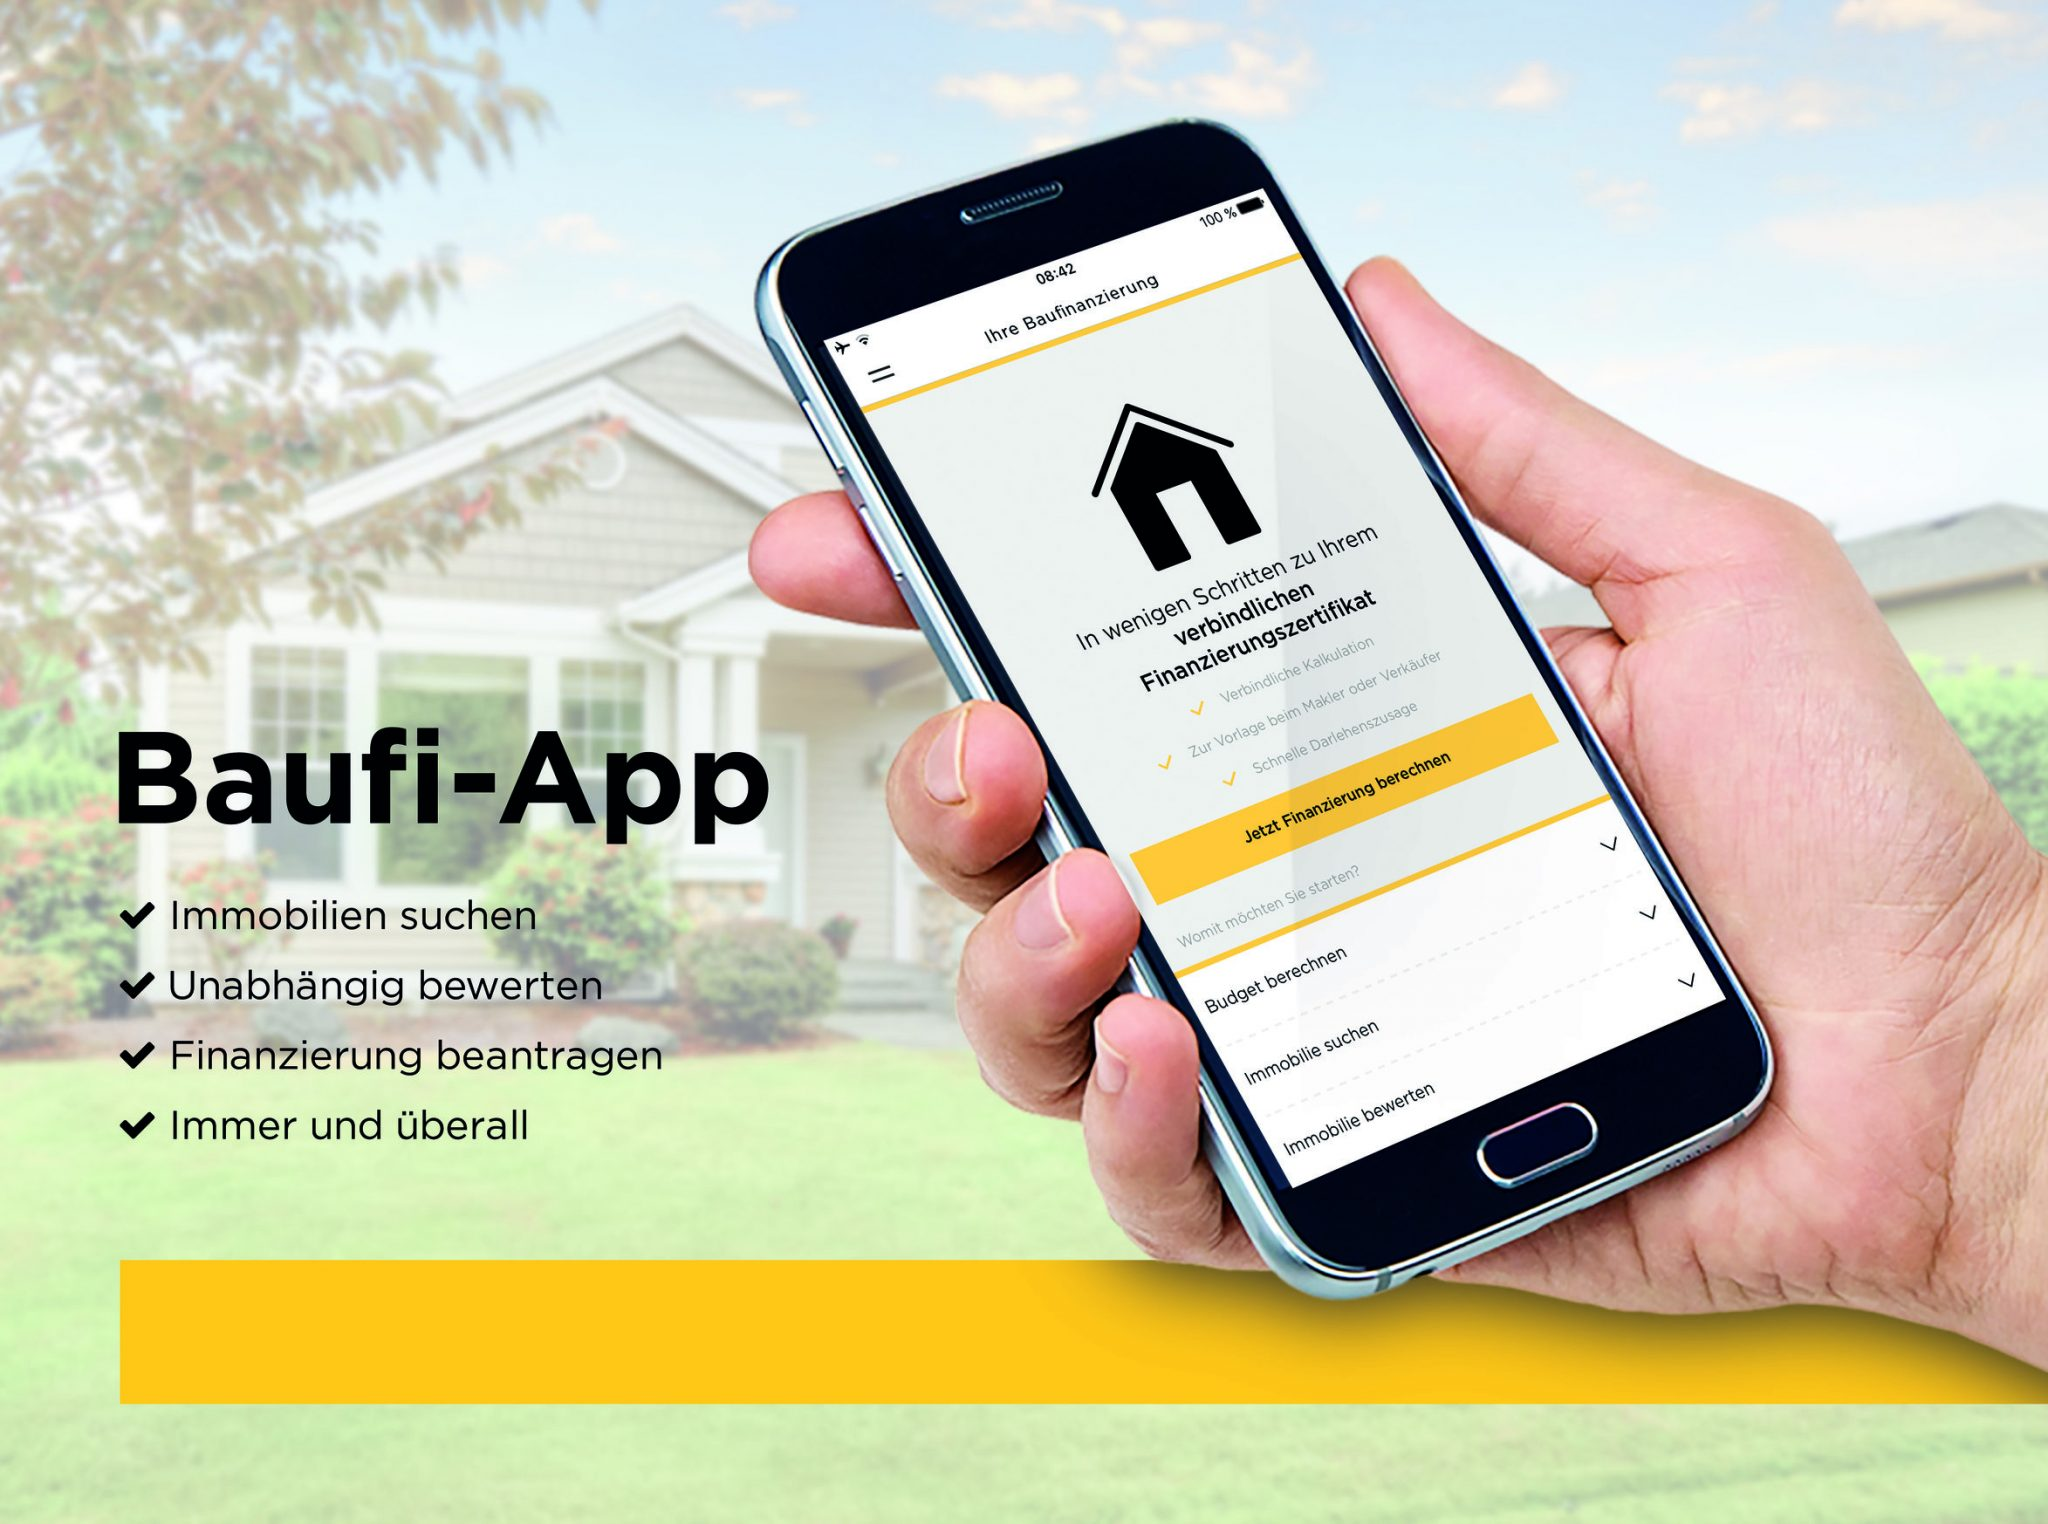 The app is free and users can carry out house and apartment purchases on their smartphones